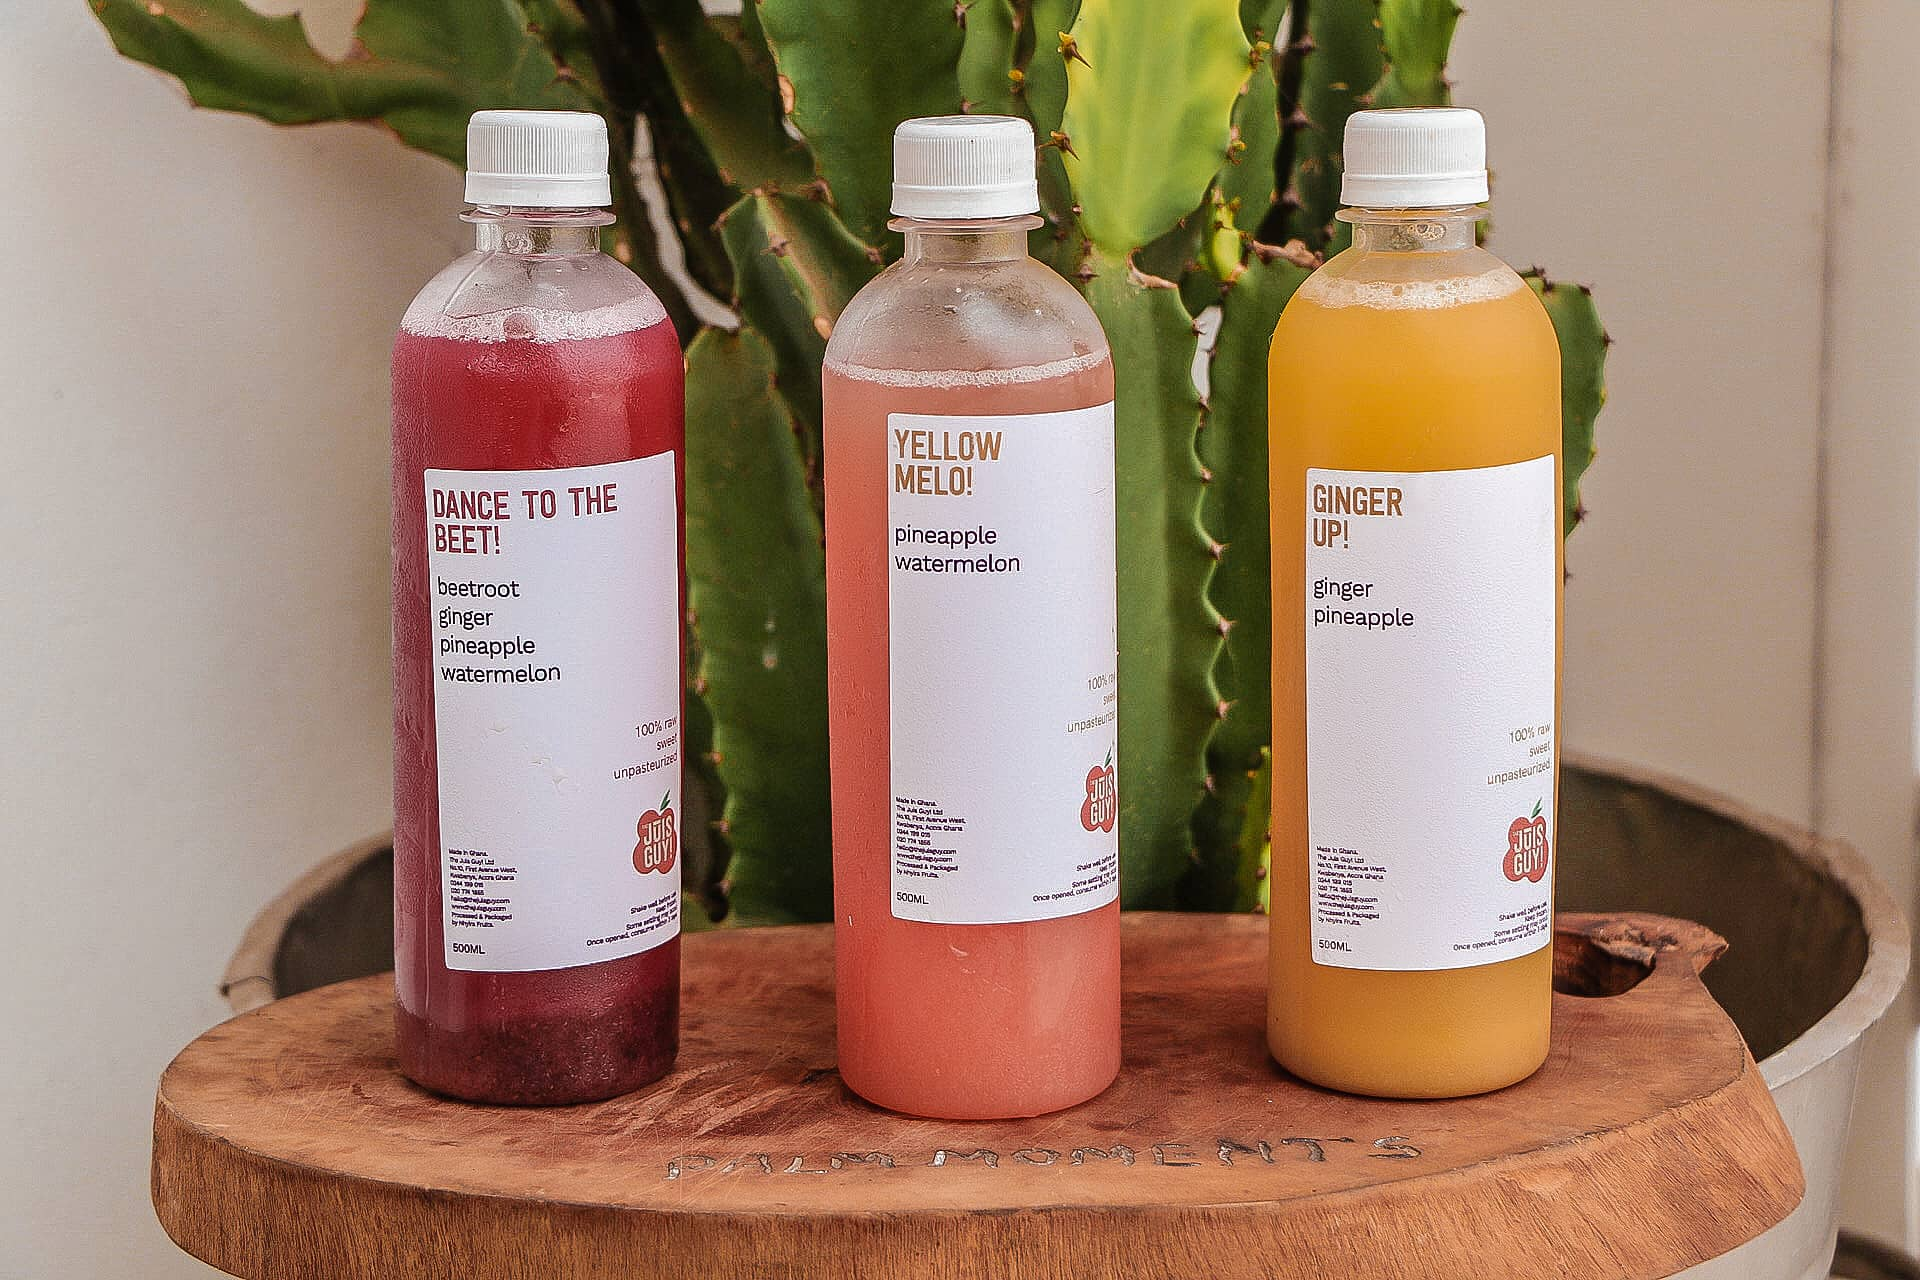 A colourful array of juice bottles